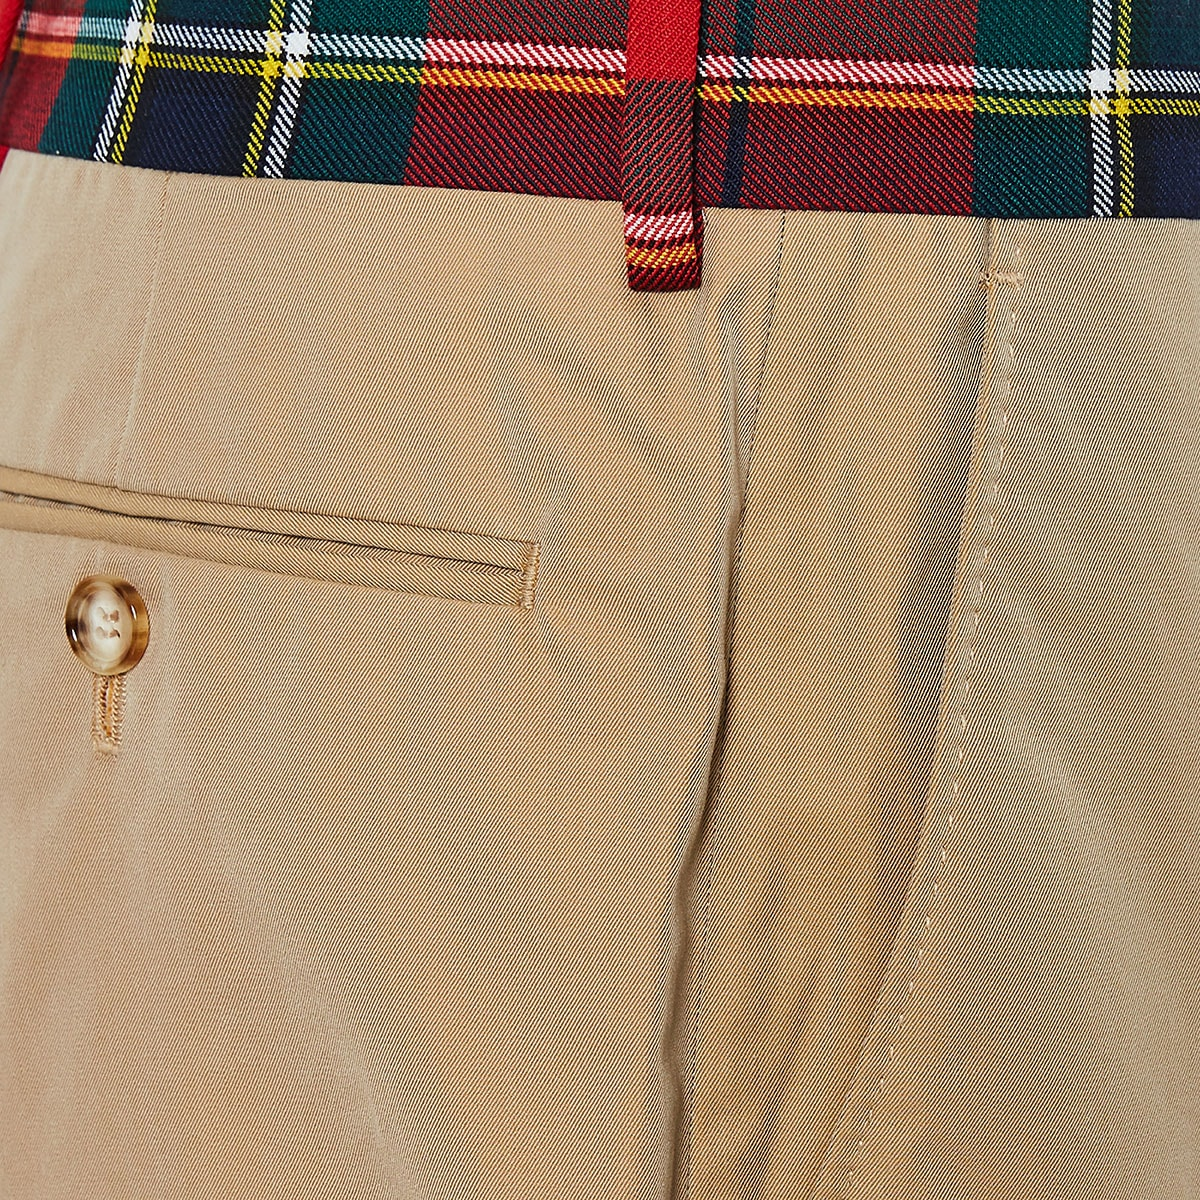 Tartan-trimmed chino trousers